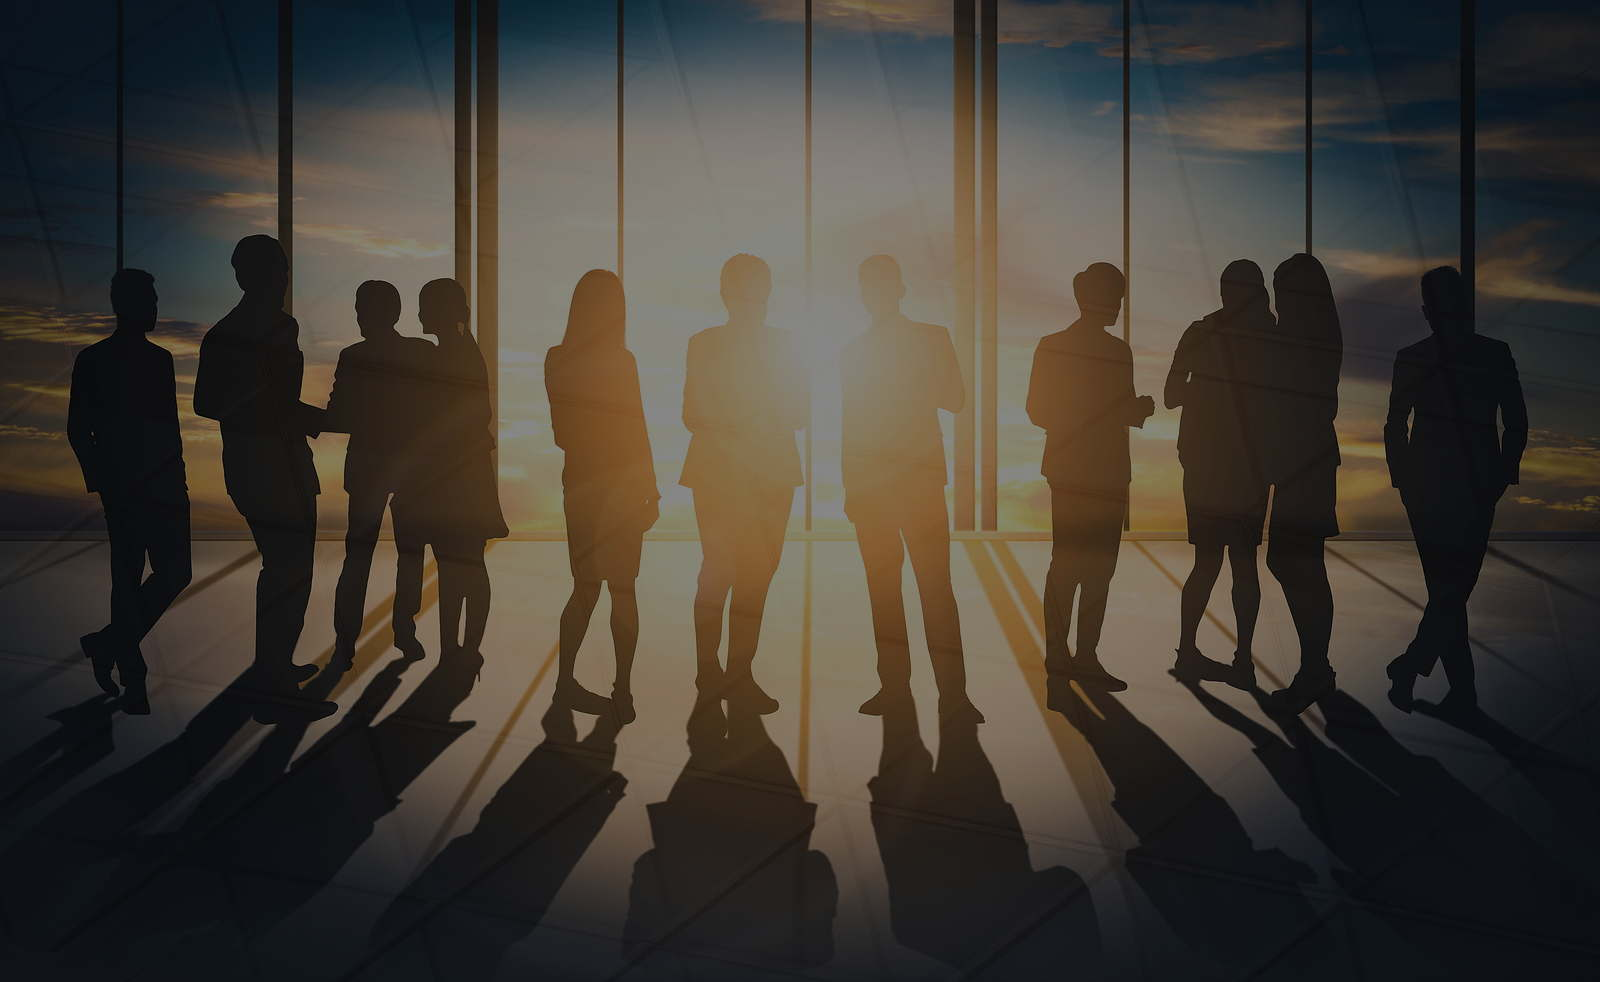 Silhouettes of group of business people standing talking